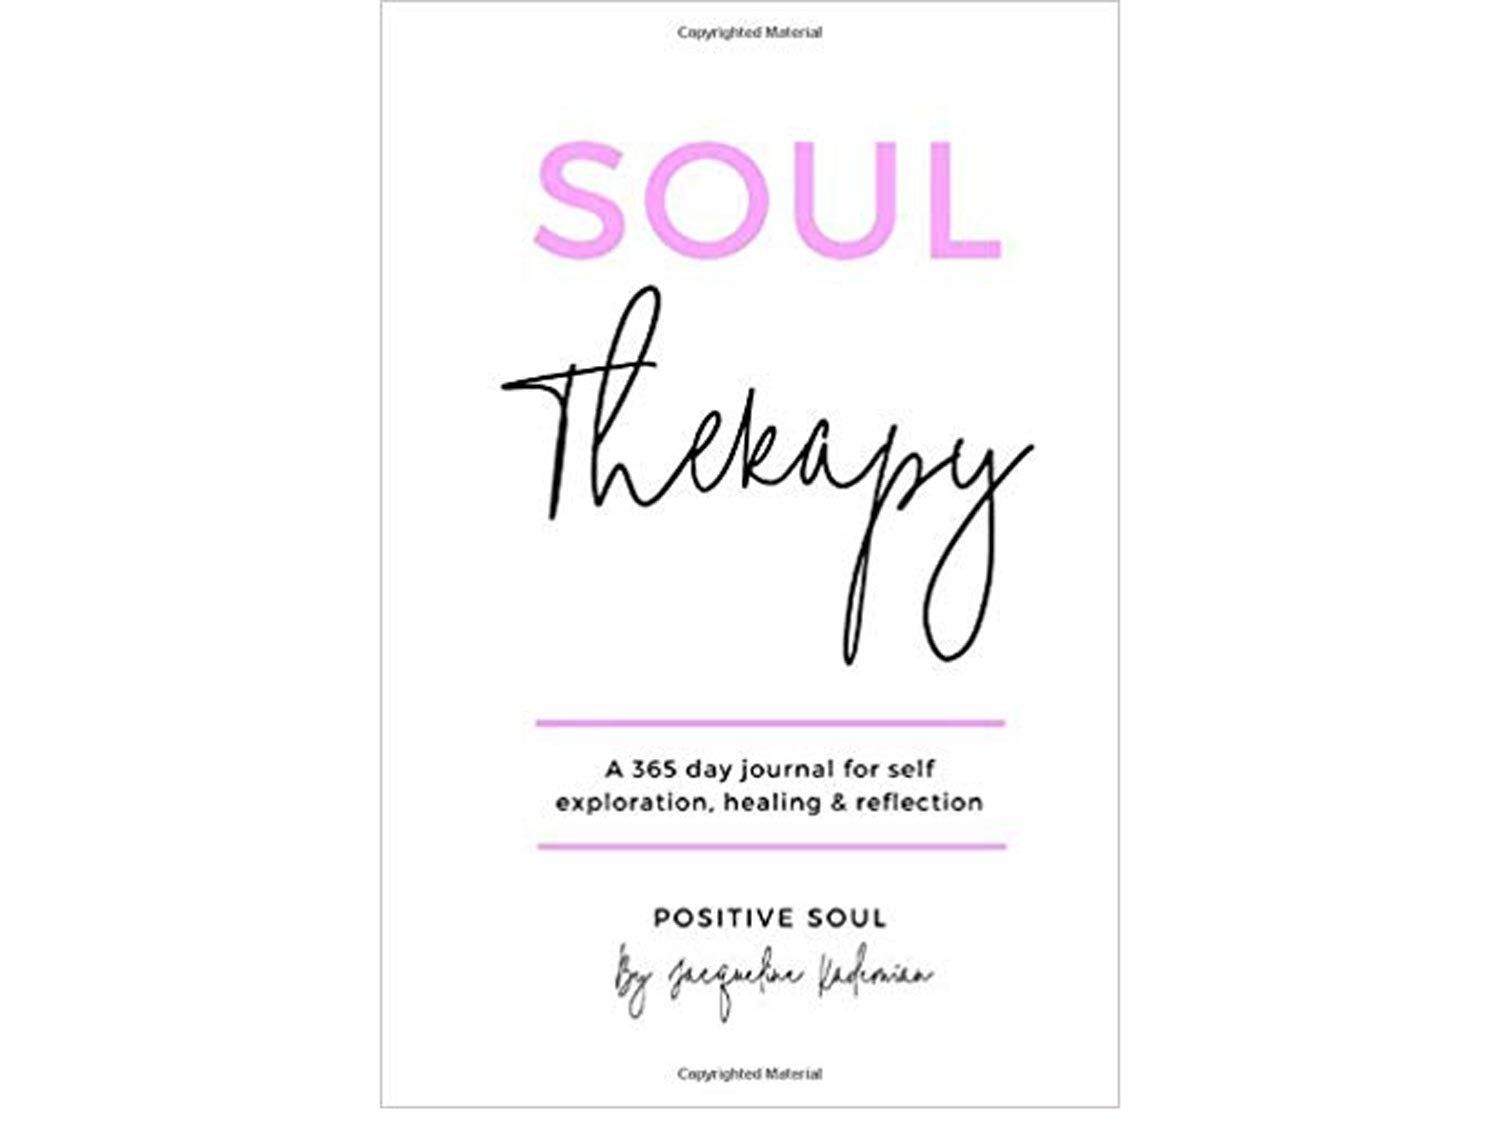 Soul Therapy: A 365 day journal for self exploration, healing and reflection